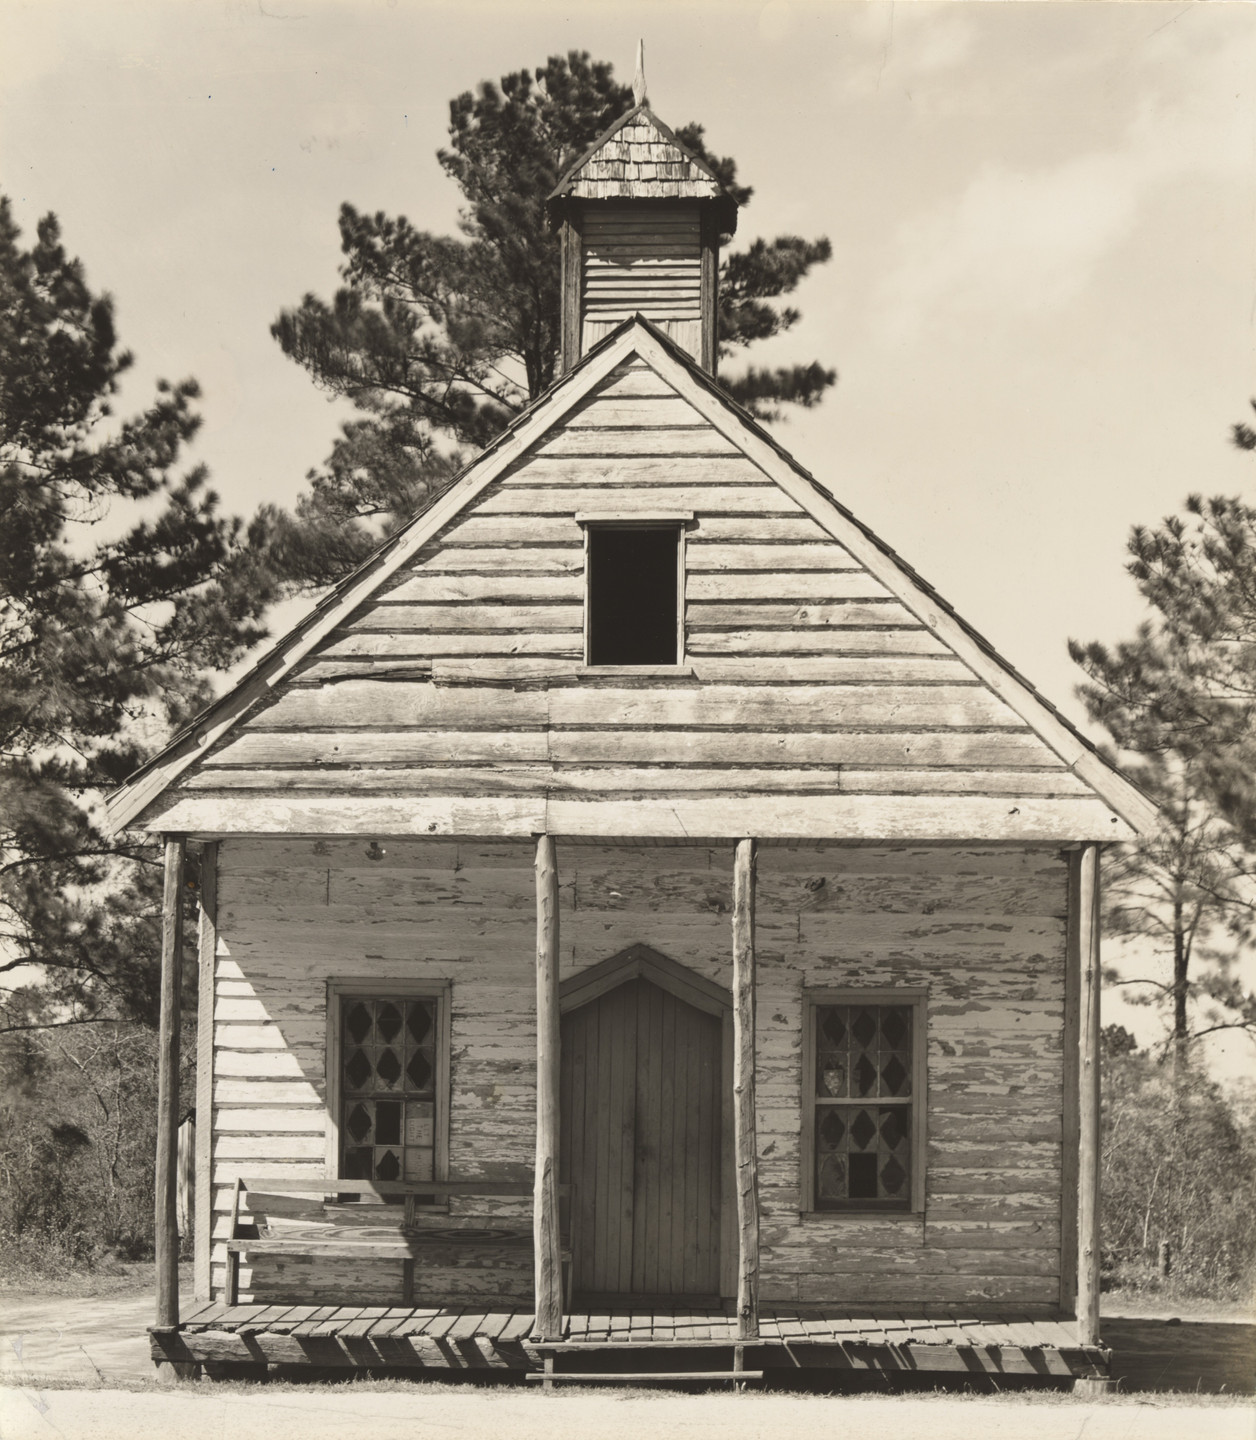 Walker Evans. Wooden Church, South Carolina. 1936